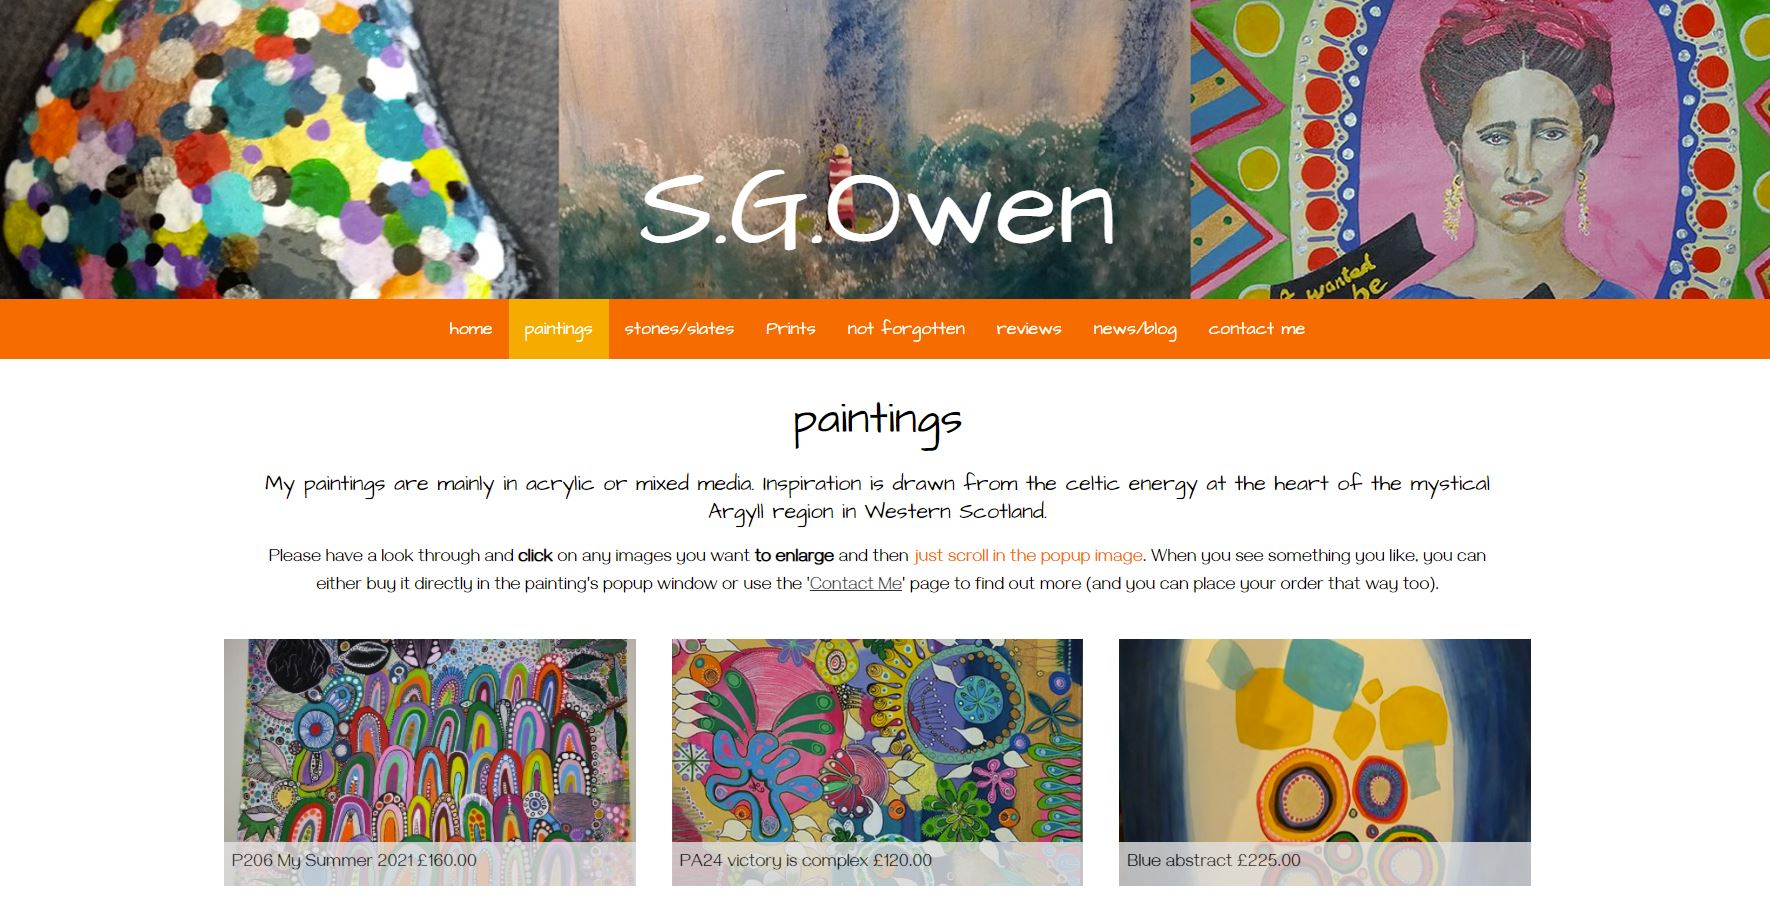 colourful screenshot of the sgowen.scot website - argyll art and paintings